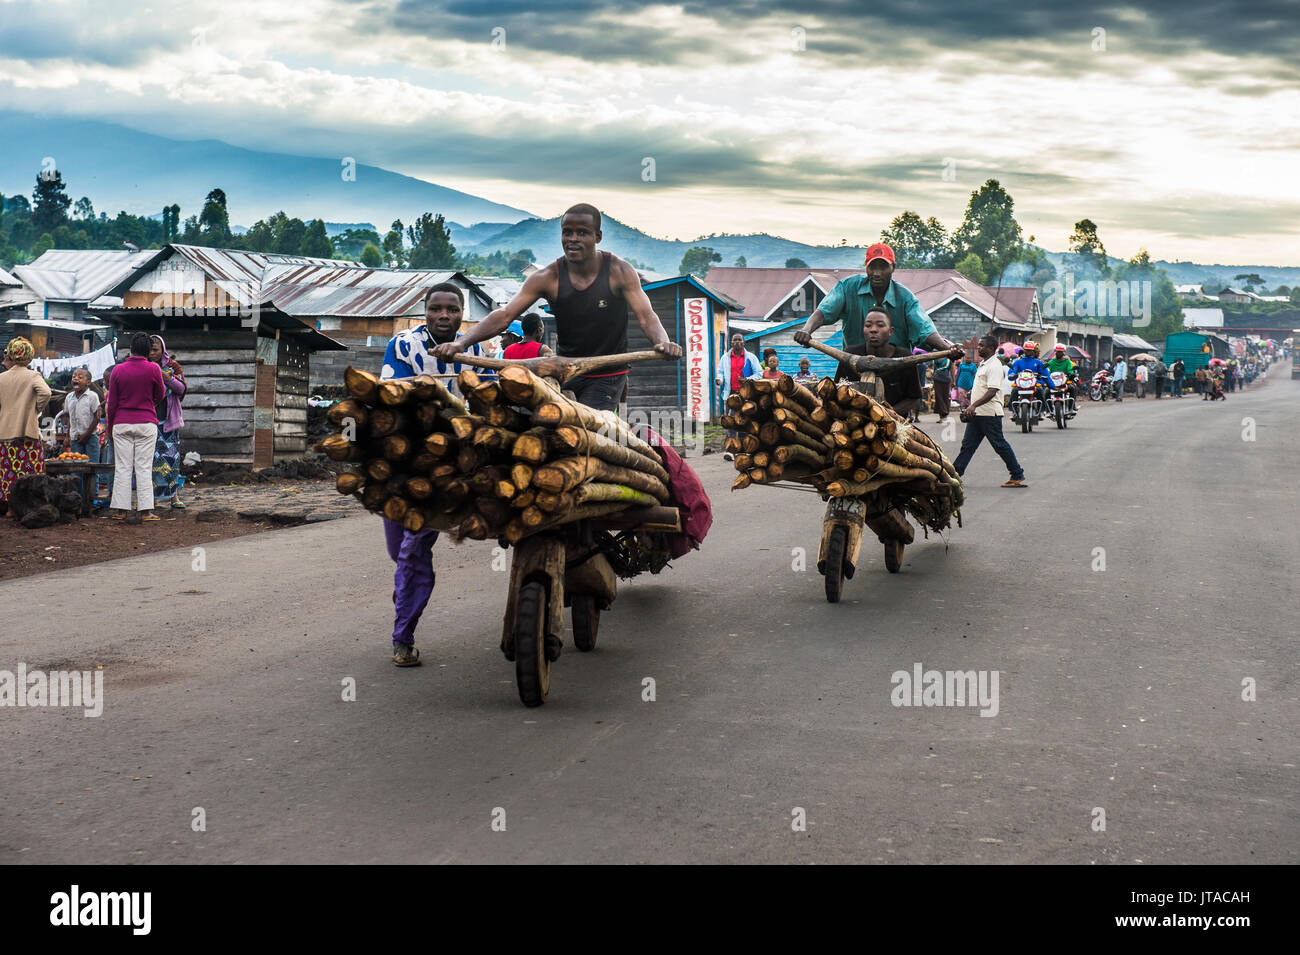 Local men transporting their goods on self made carriers, Goma, Democratic Republic of the Congo, Africa - Stock Image